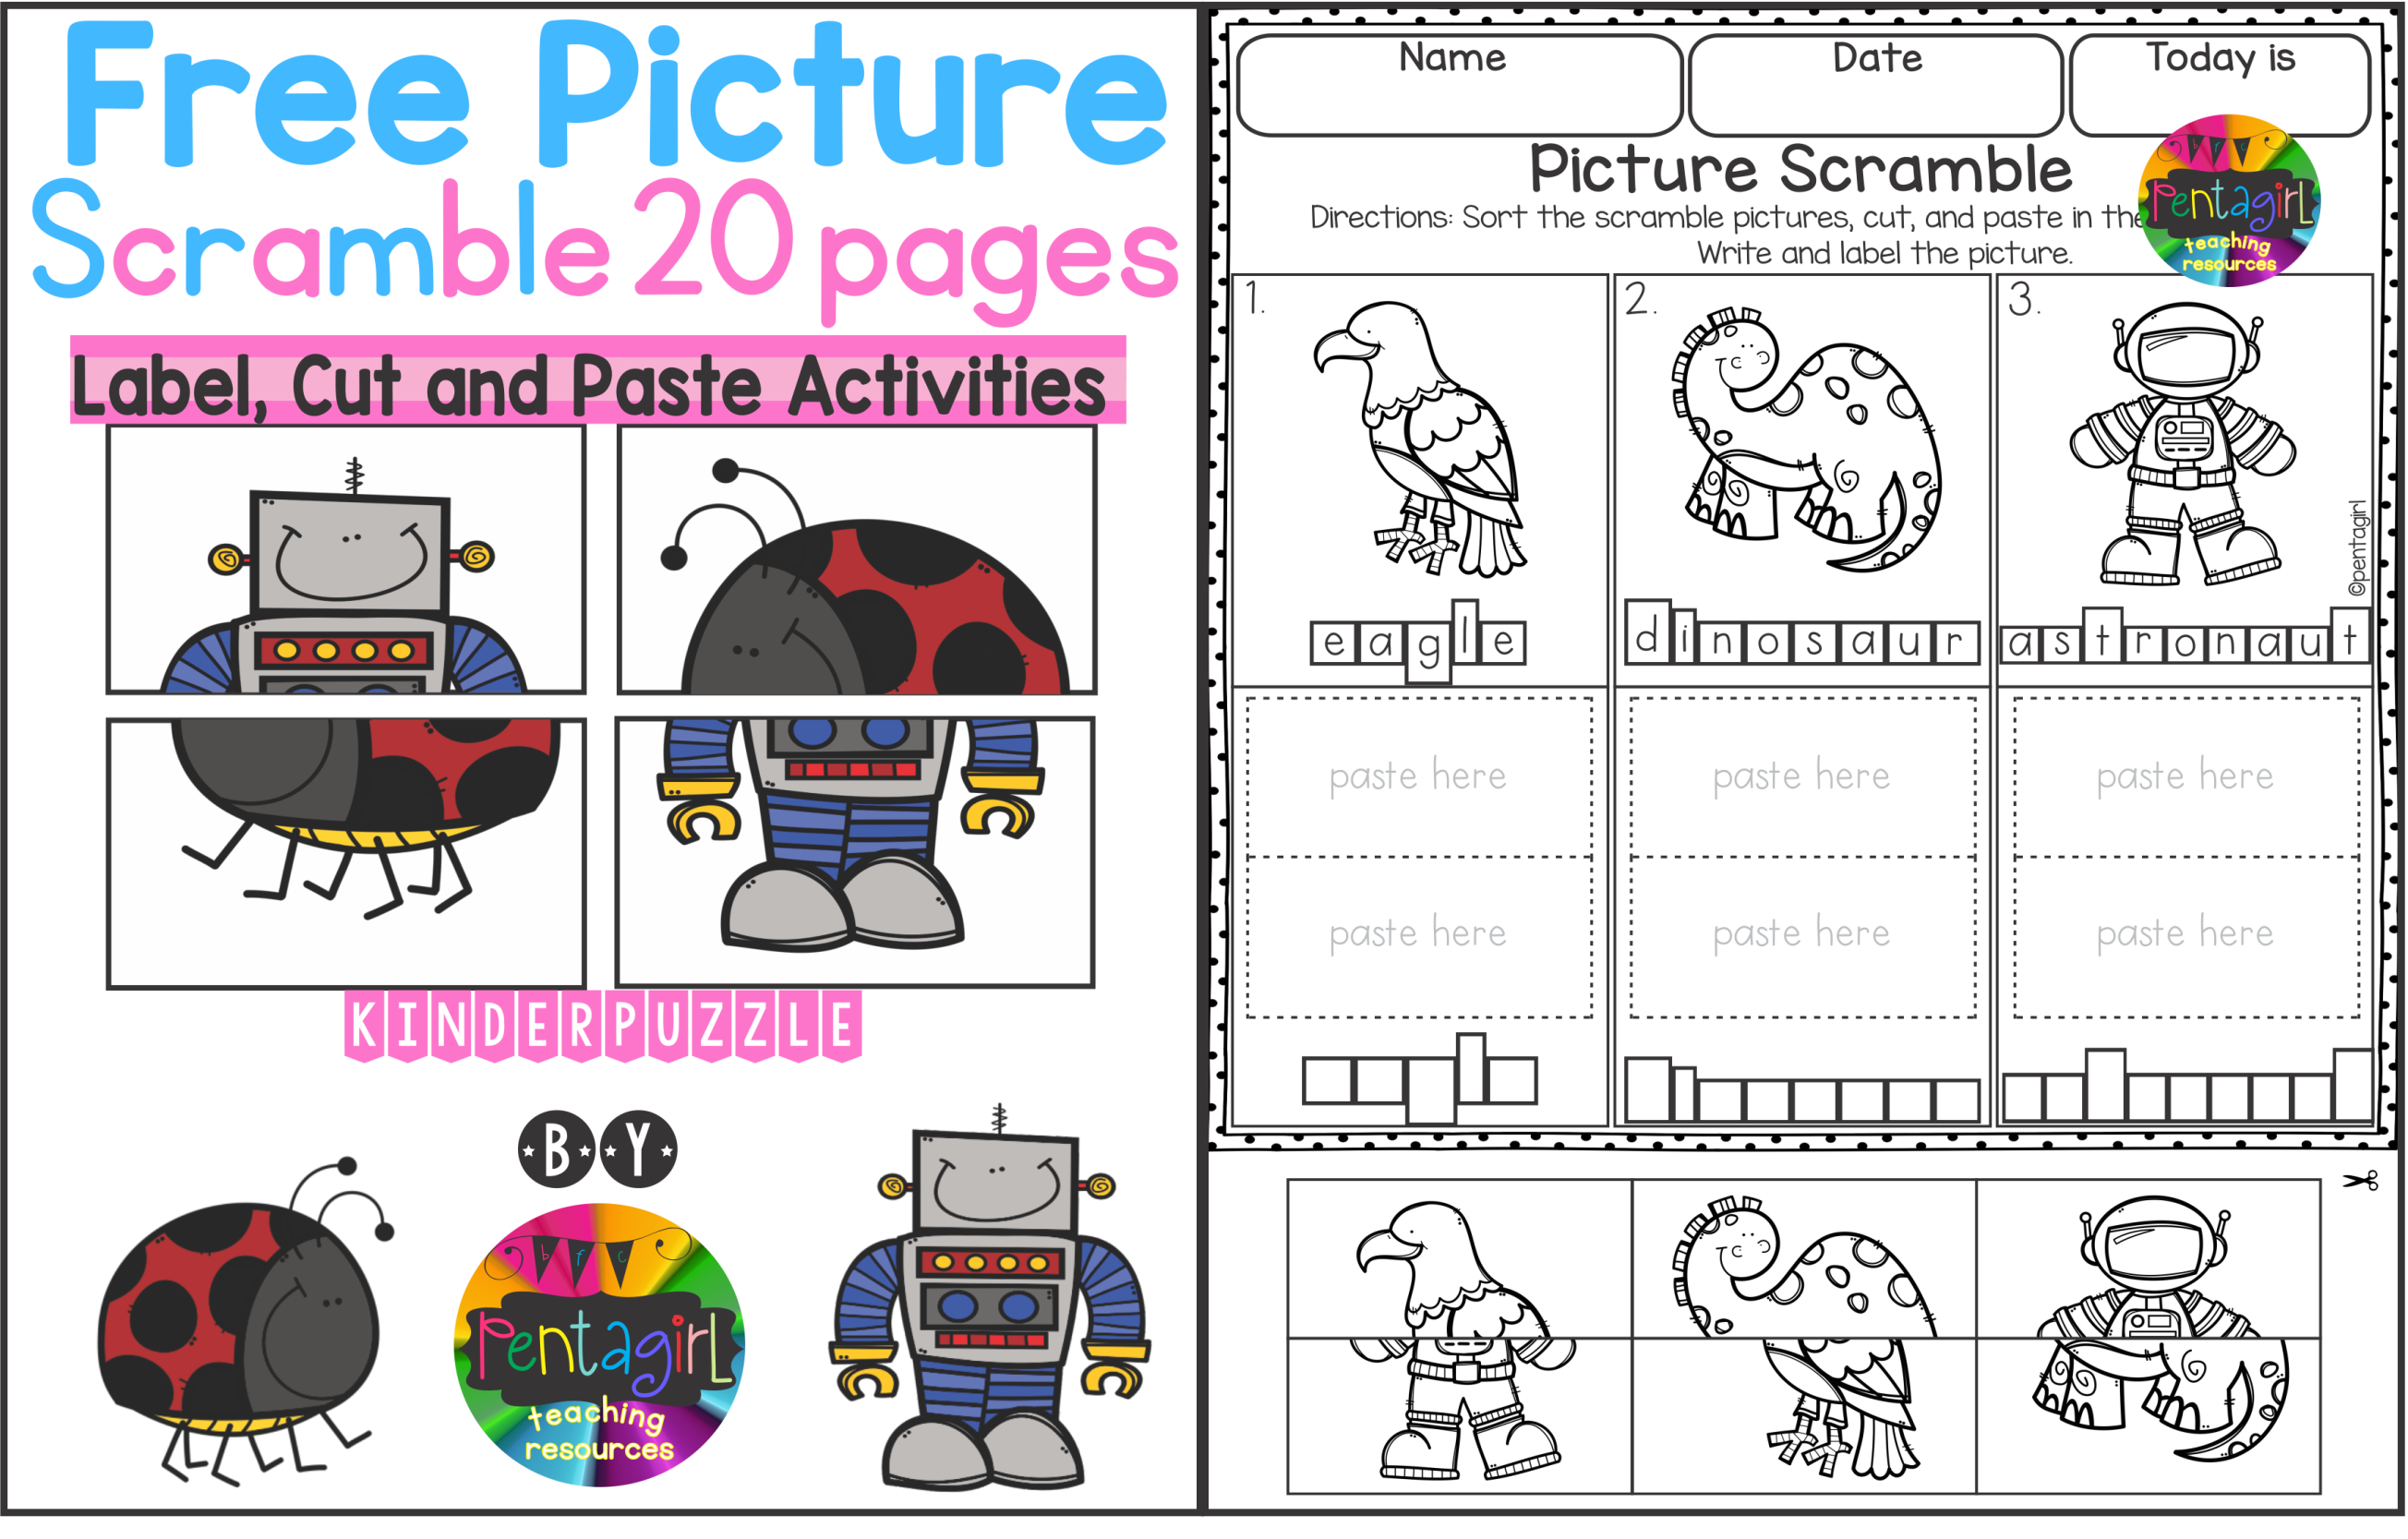 Free Kinder Picture Scramble 20 Pages. Fun activities for ...